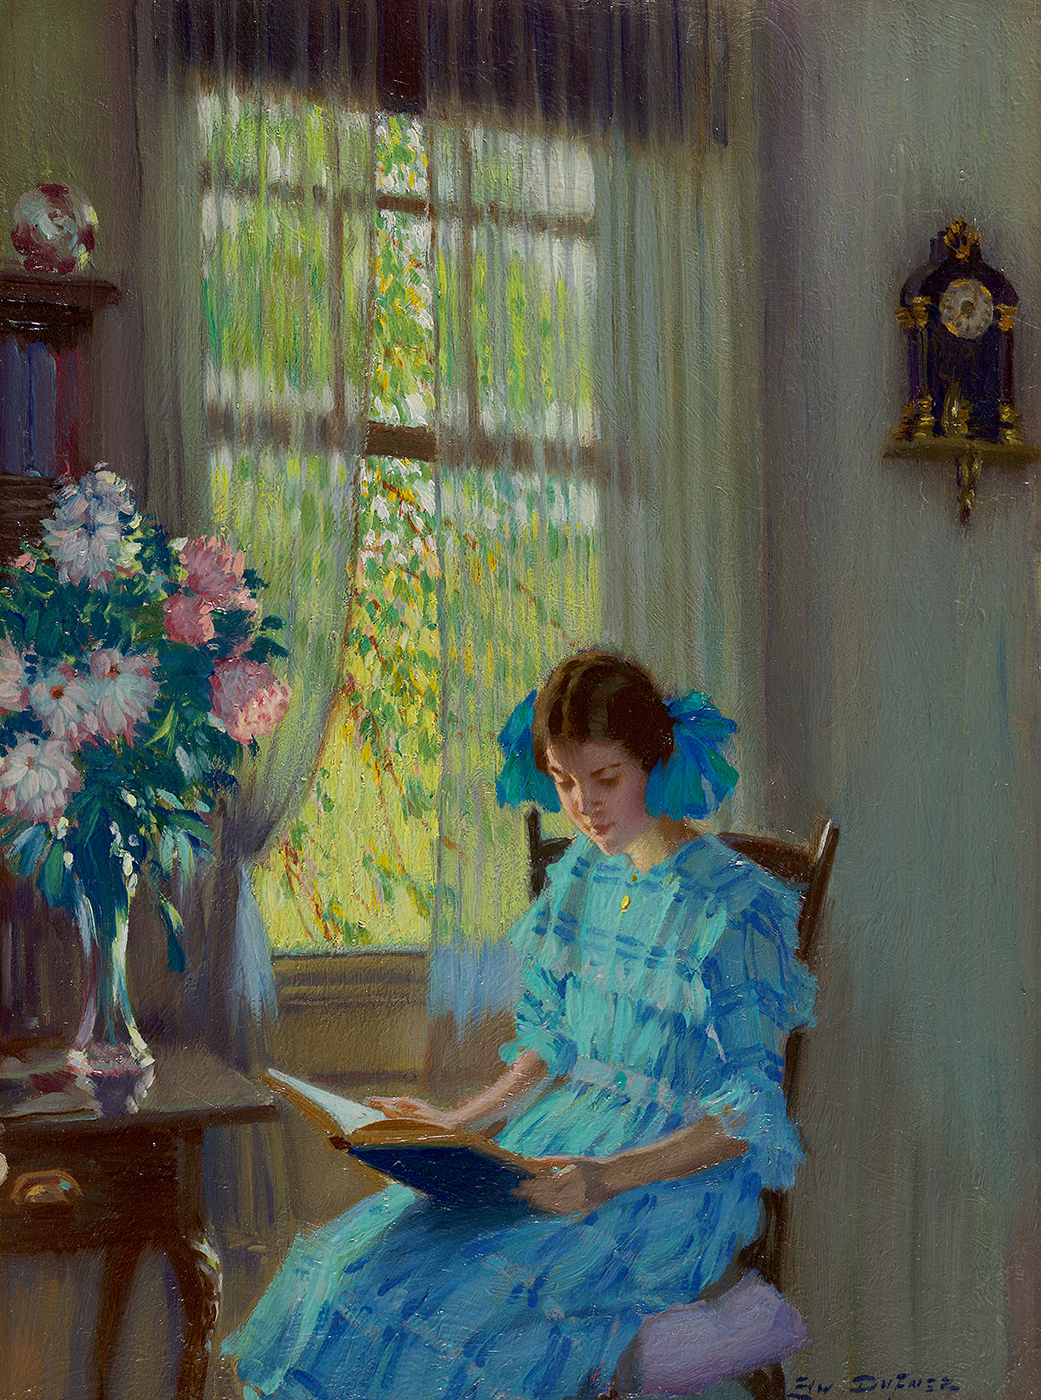 Margaret by the Window, 1915